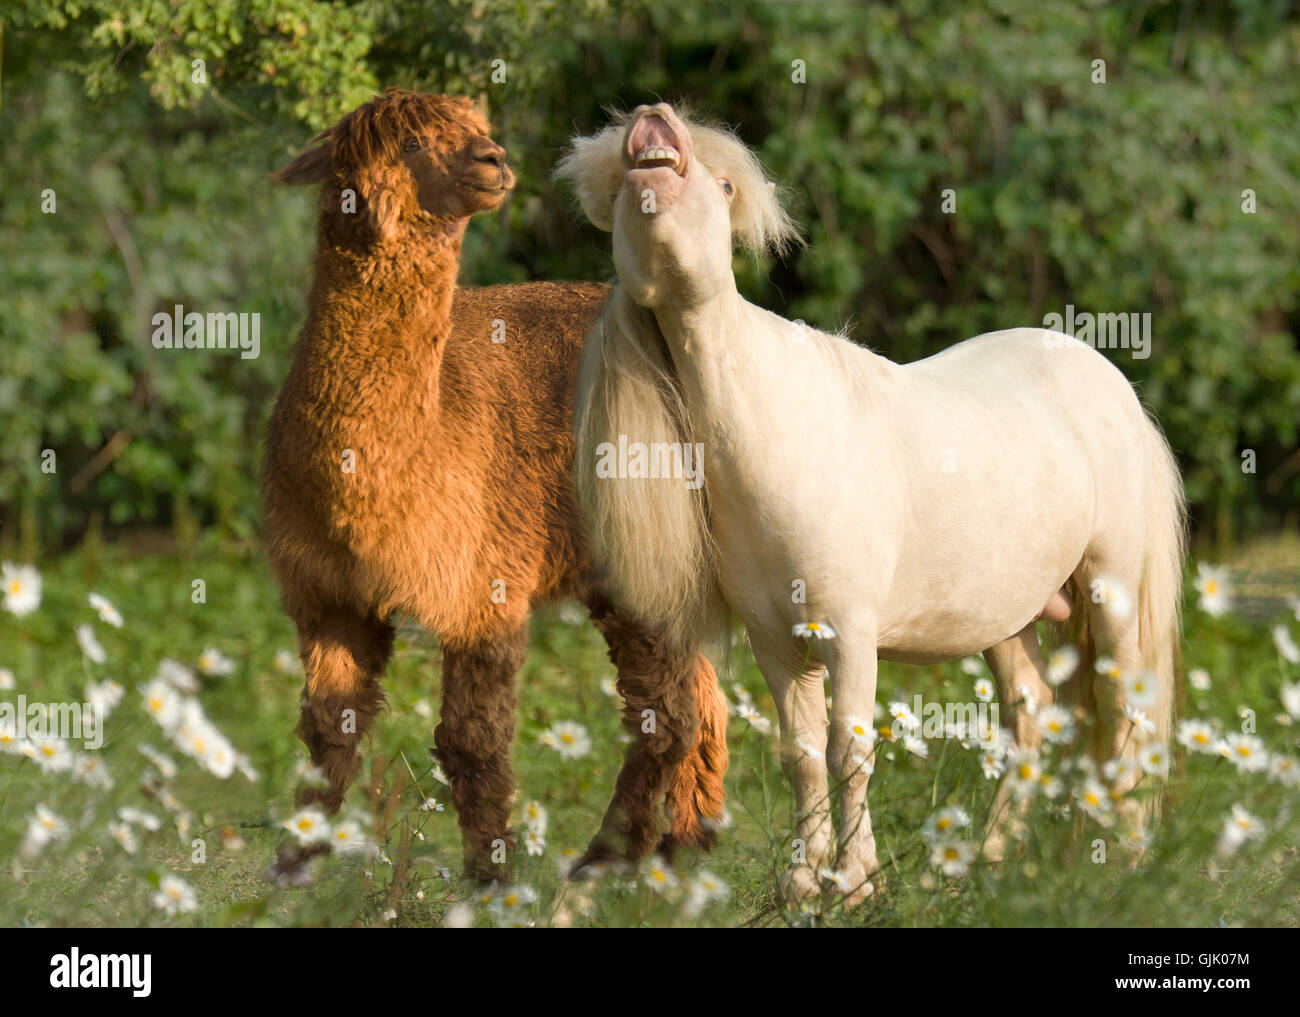 Miniature Horse stallion with llama friend in wildflower meadow - Stock Image